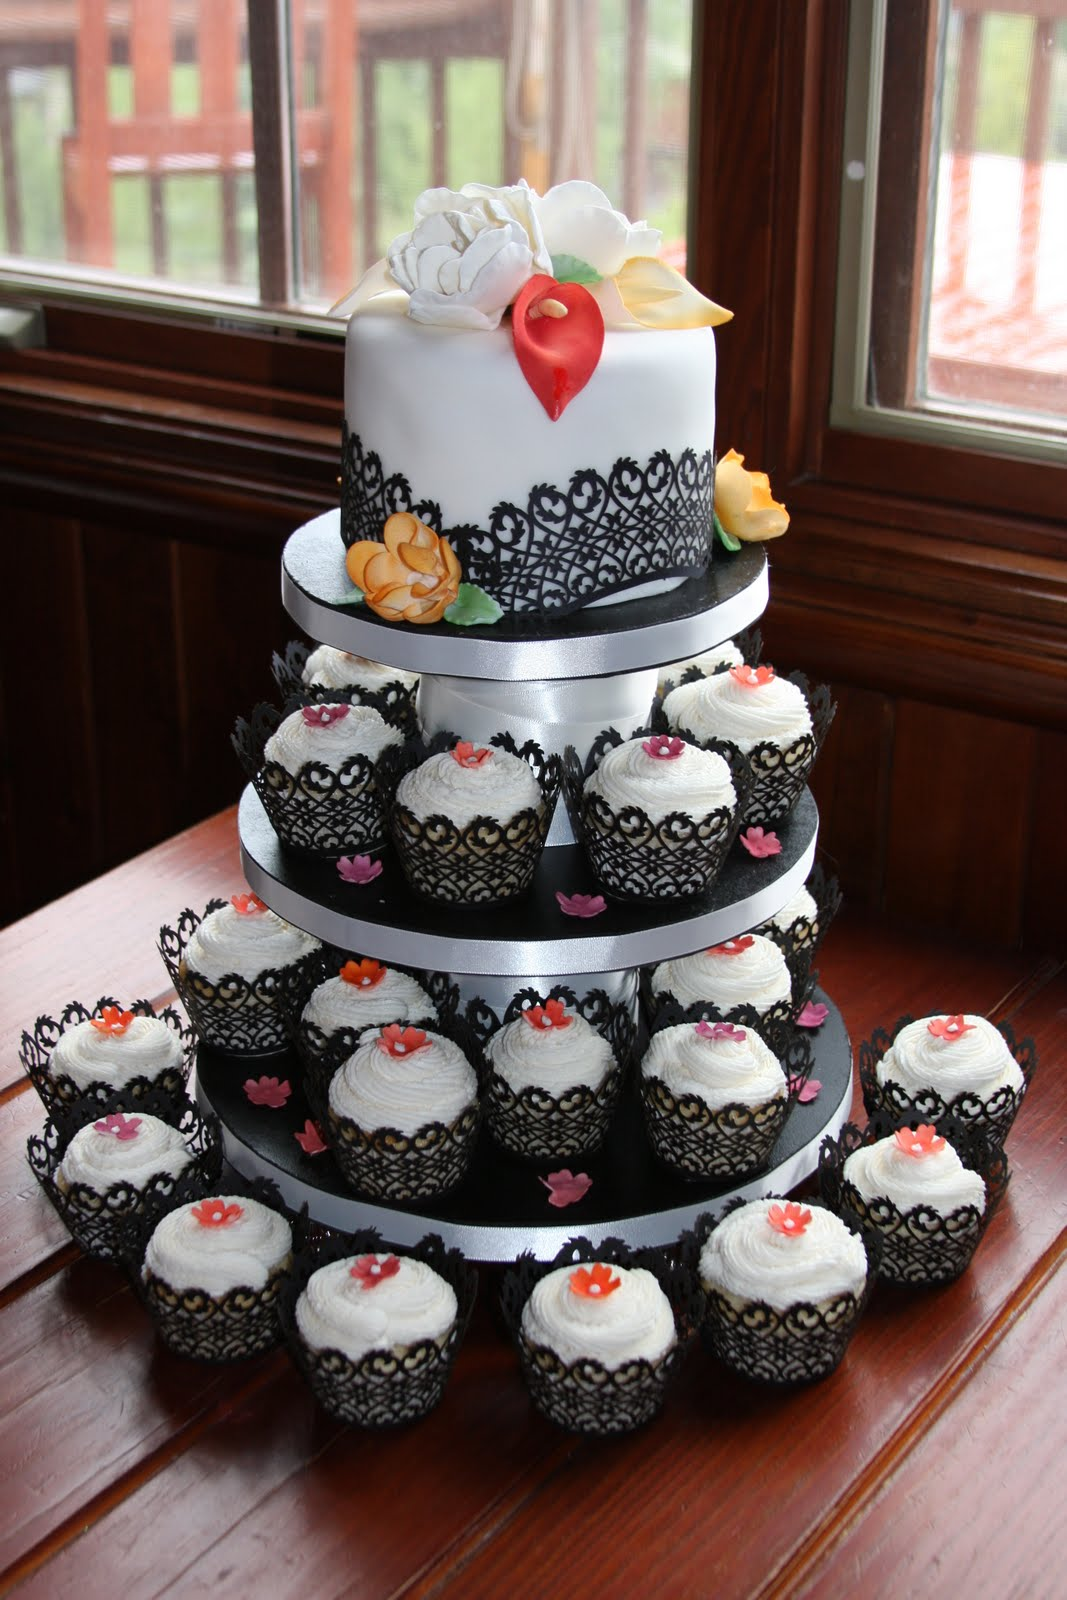 layer a cake shop cupcake wedding cake. Black Bedroom Furniture Sets. Home Design Ideas